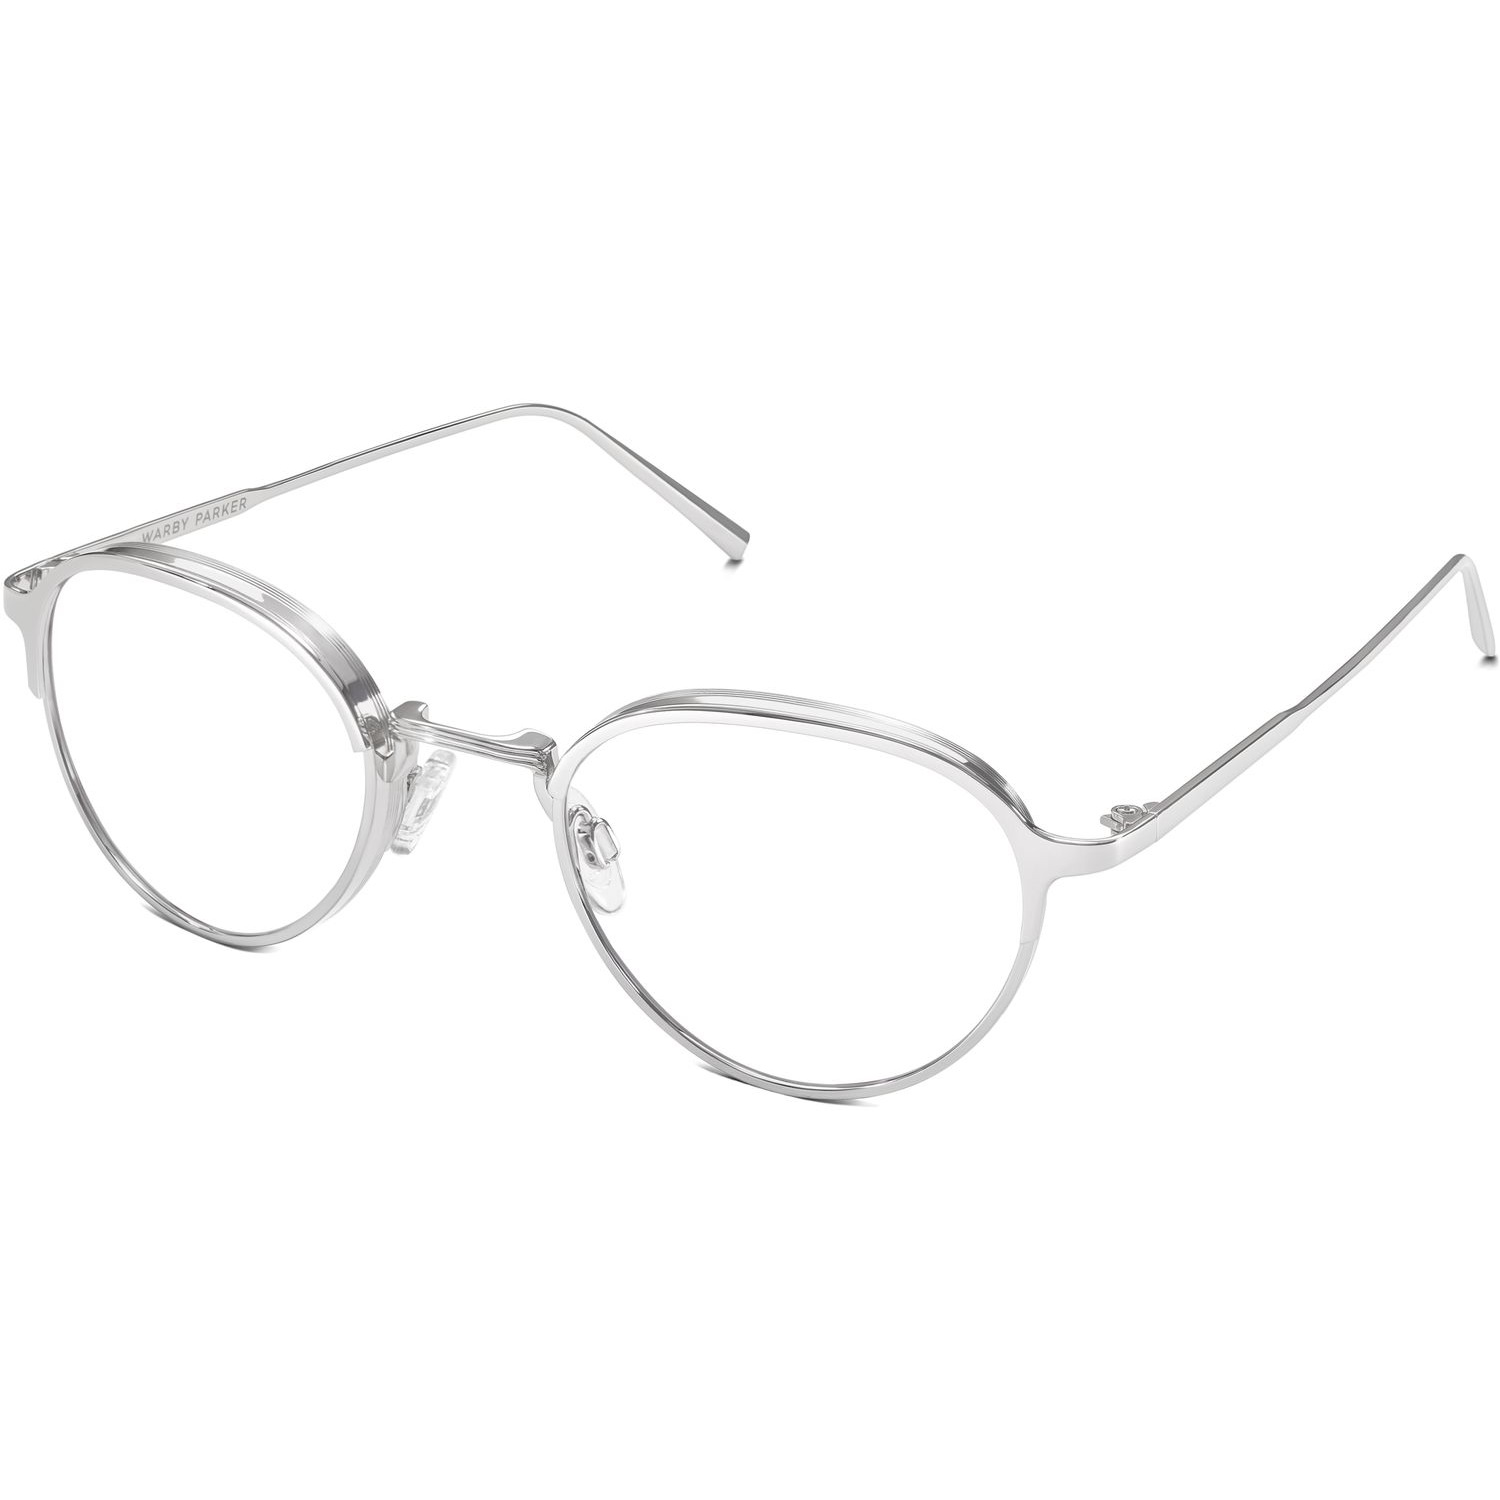 528b5e759397 Maker Eyeglasses Edition — Eyewear Blogger